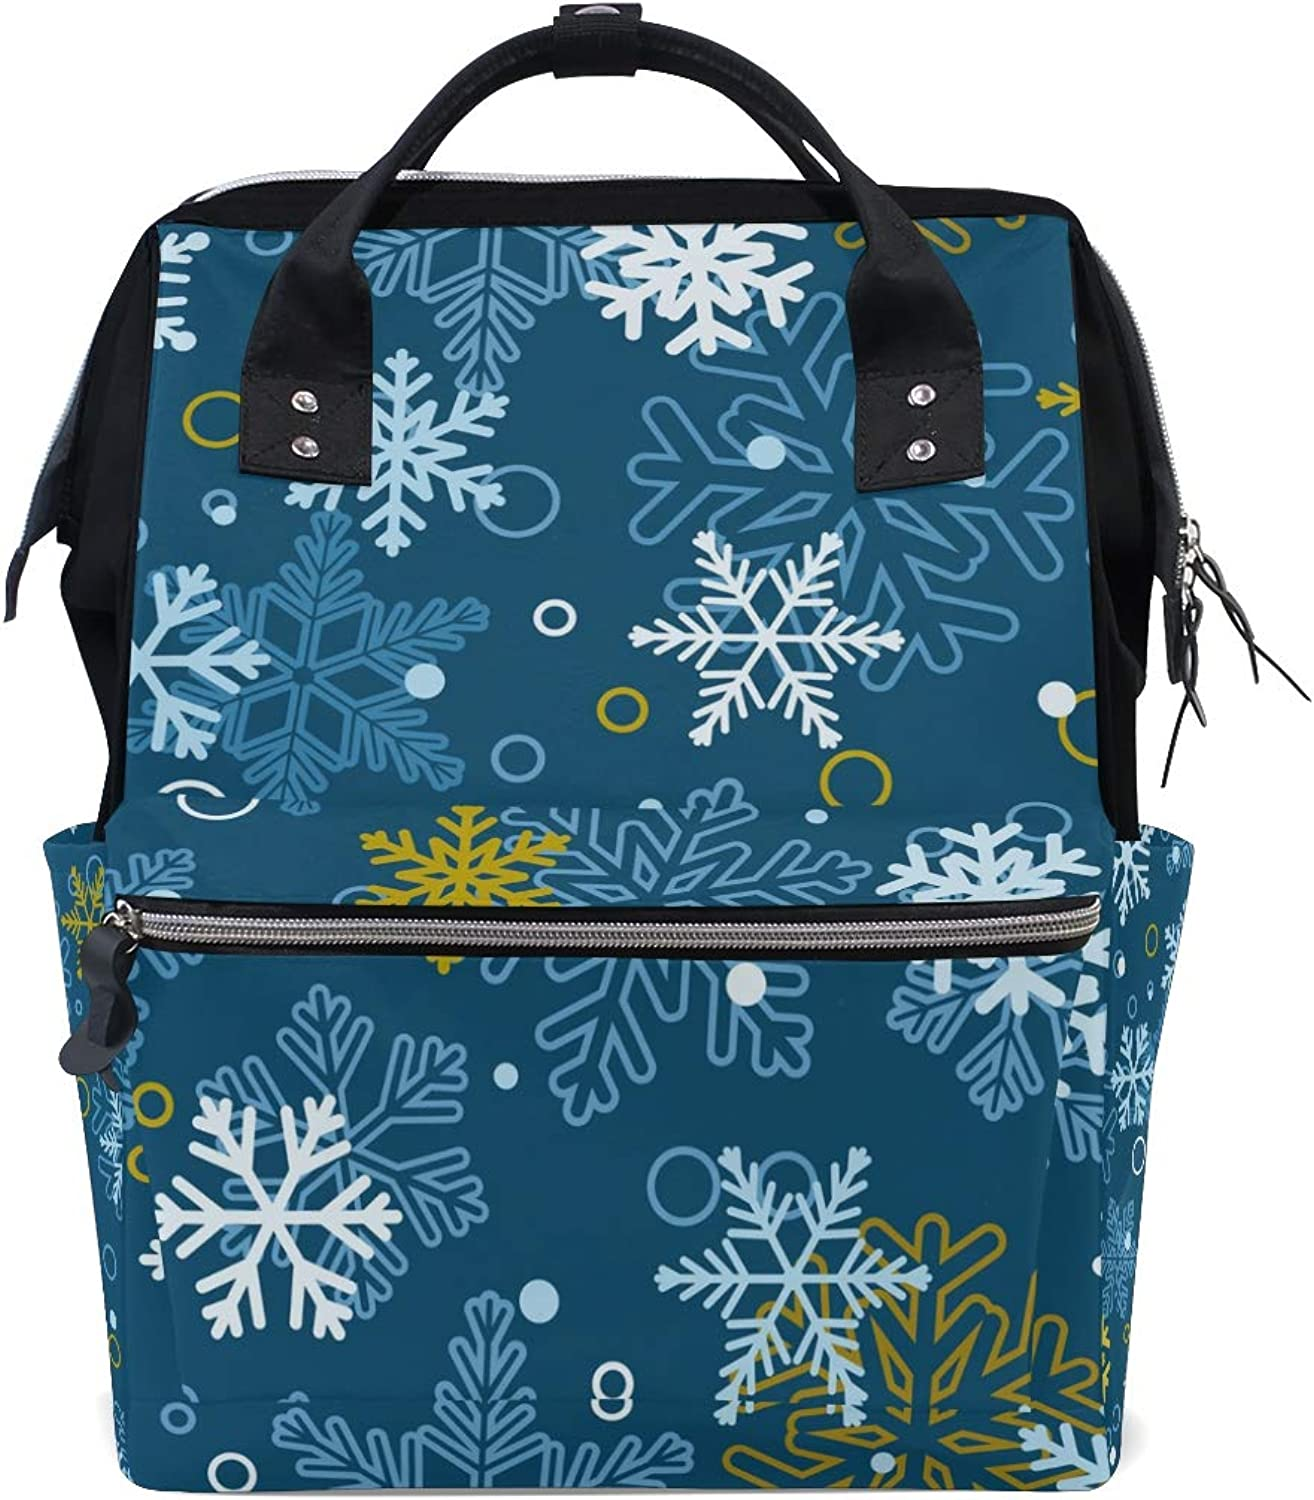 ColourLife Diaper bag Backpack Christmas colorful Snowflakes Tote Bag Casual Daypack Multifunctional Nappy Bags